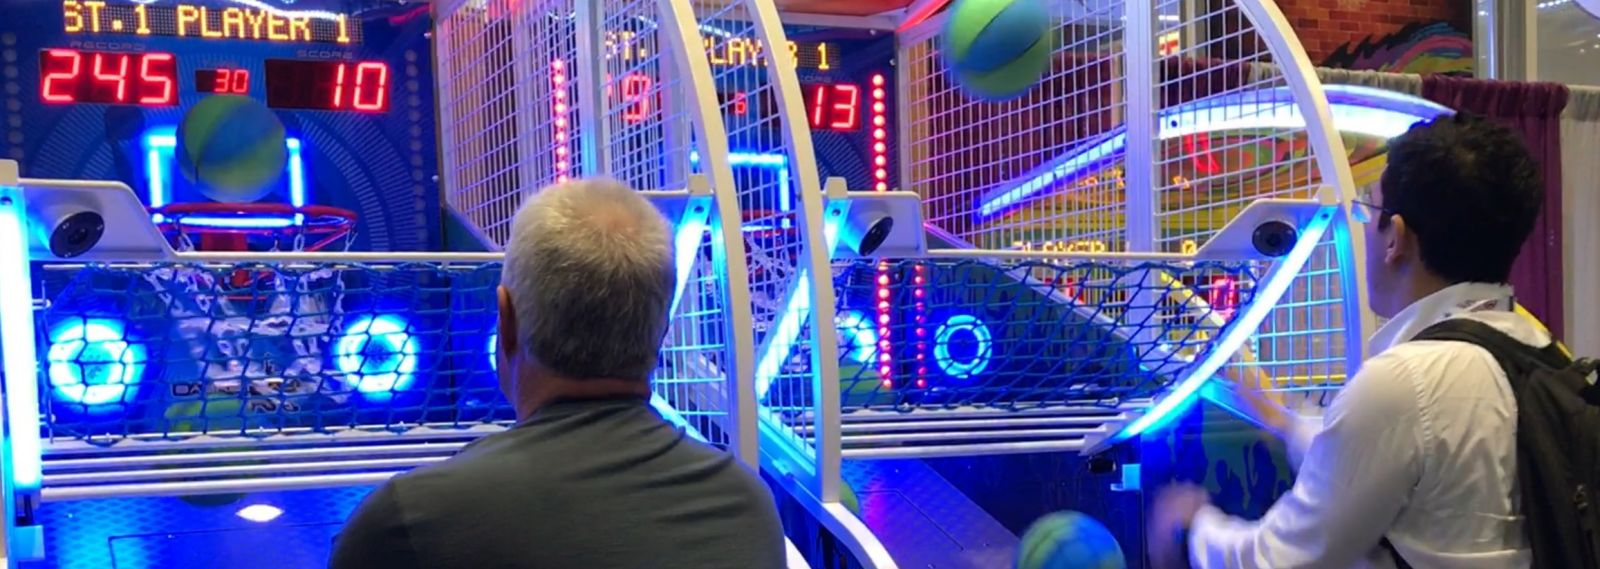 Basketball Arcade Game Sports Rentals